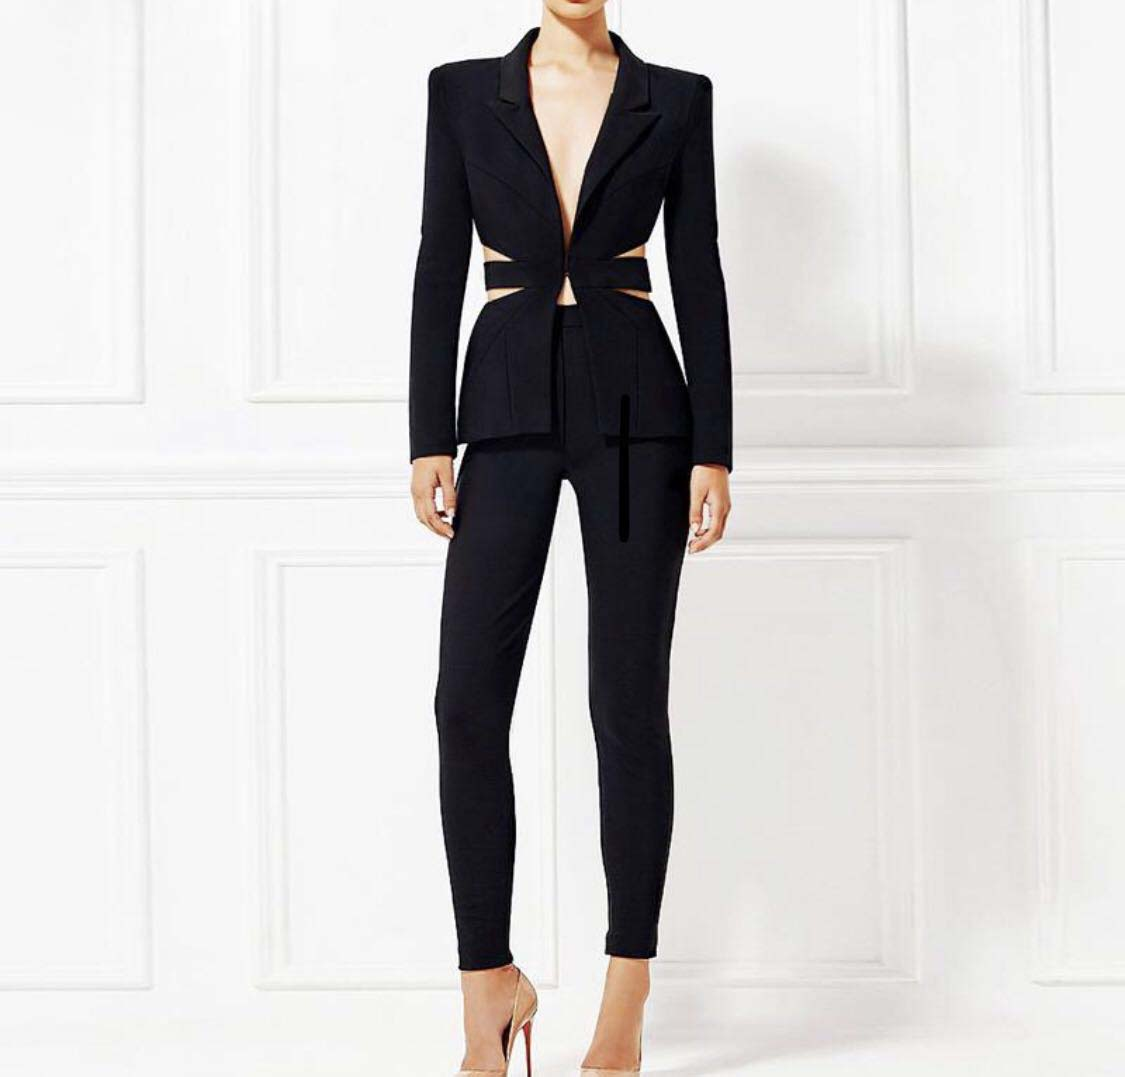 2019 New Office Work Blazer Suits Of High Quality OL Women Pants Suit Blazers Jackets With Trouser Two Pieces Set Custom Made